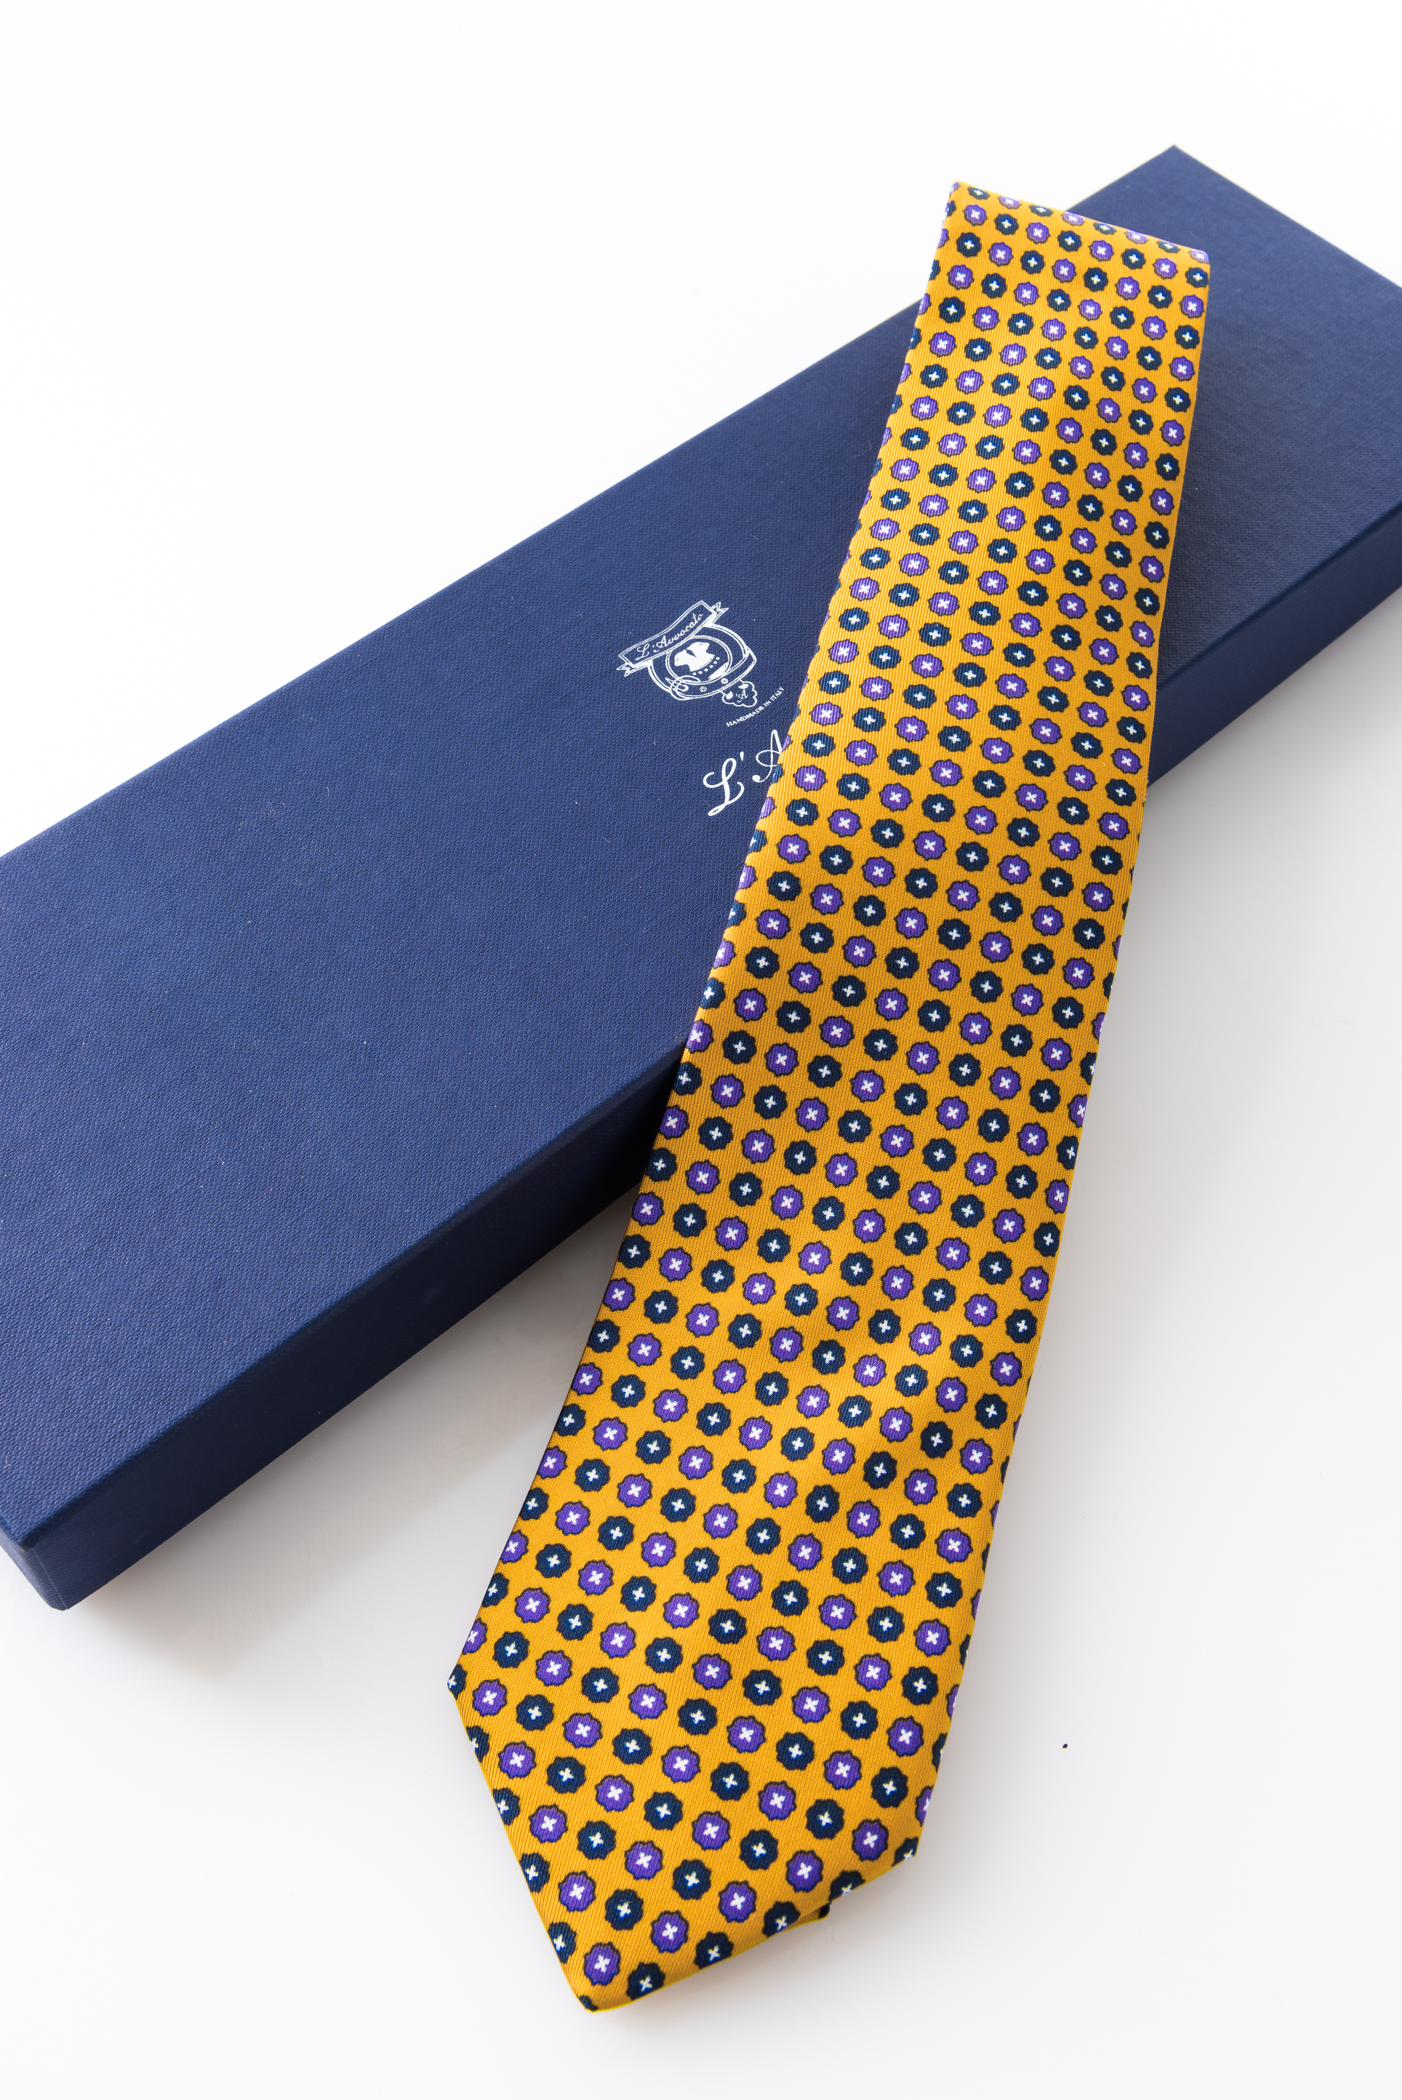 Seven-fold Tie – Aniceta Giallo Senape – and its packaging